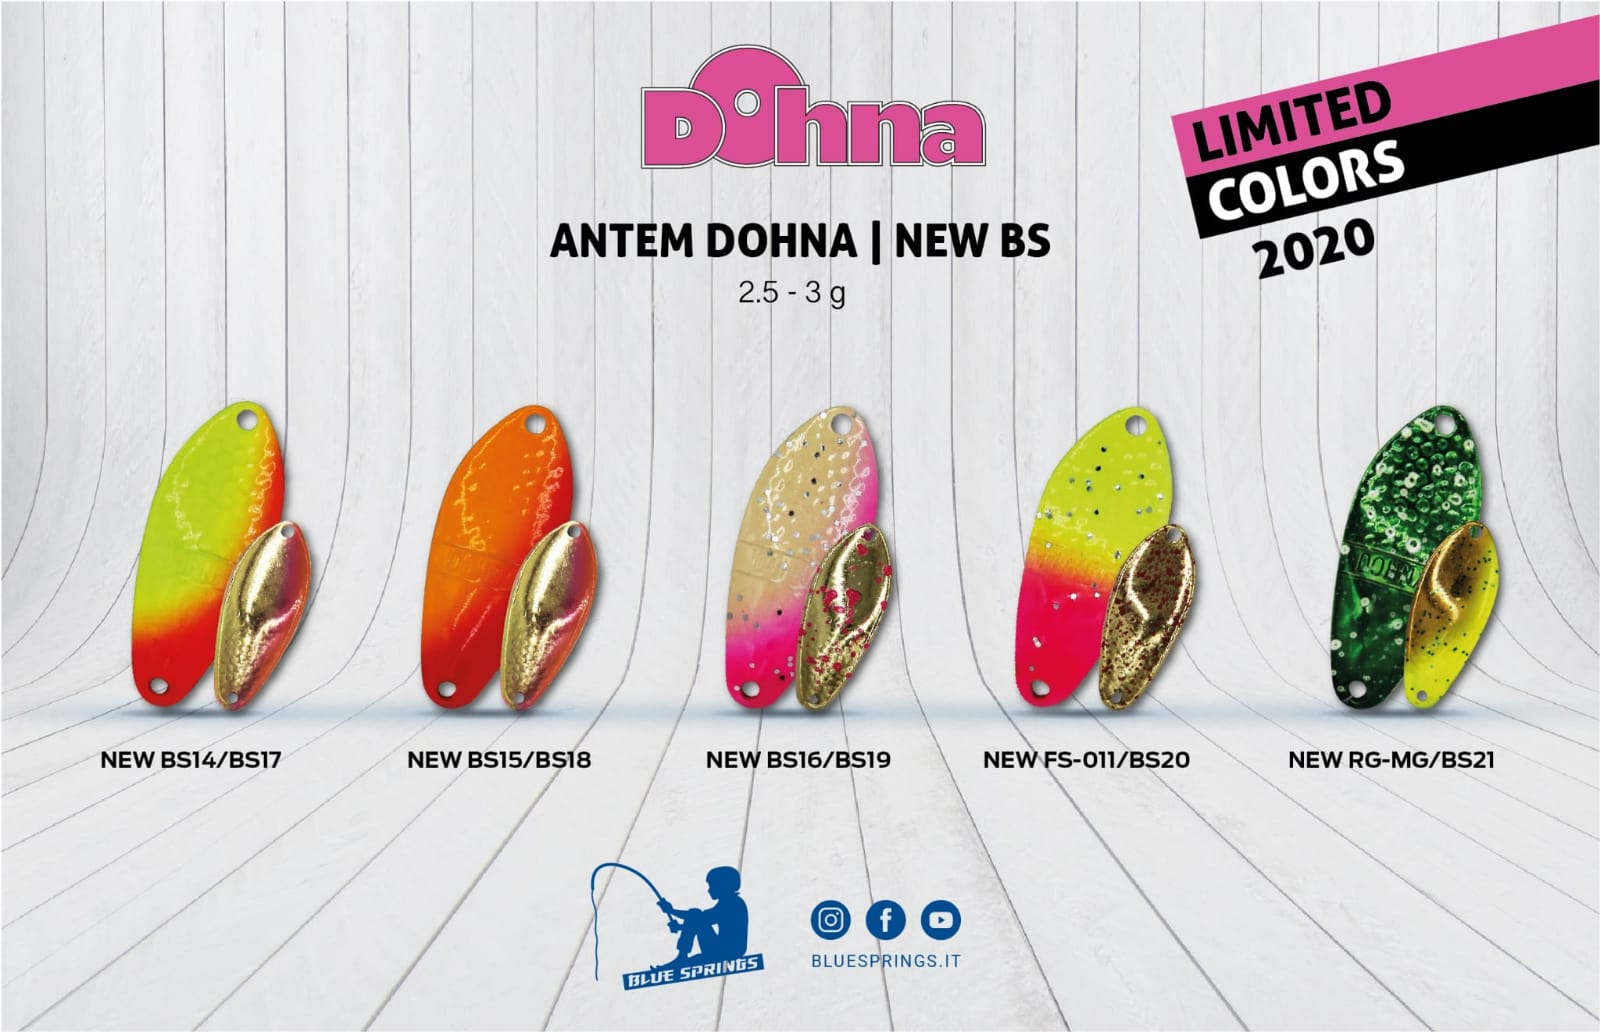 Esche-metalliche-ondulante-spoon-antem-dohna-limited-colors-2020-bs-it20-lurefishing-planet.